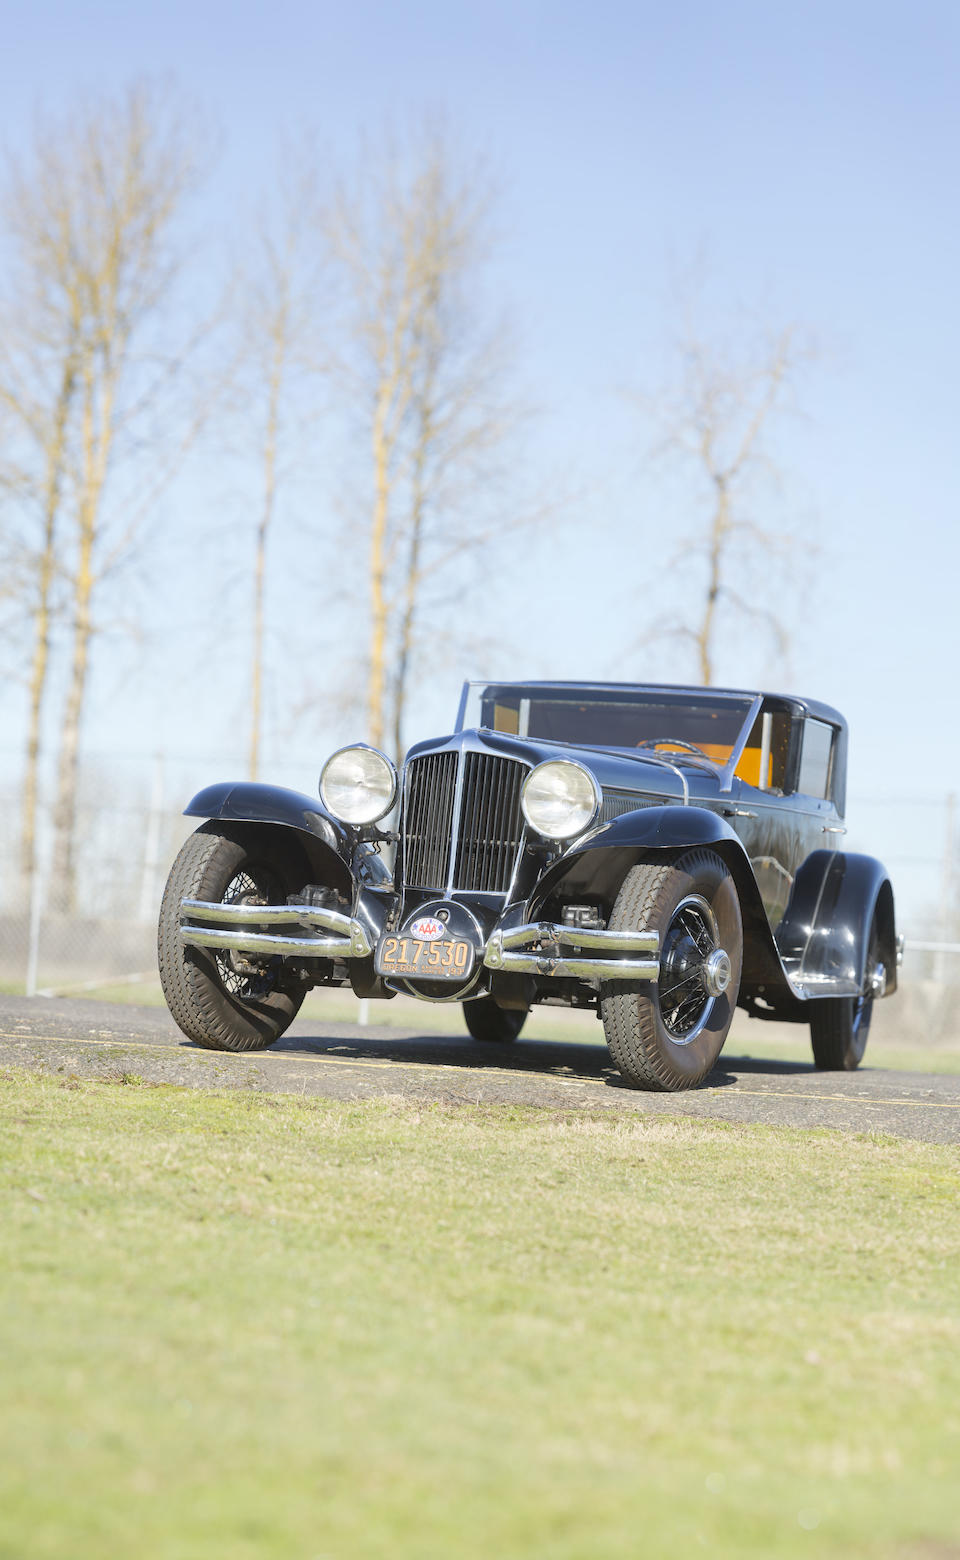 <i>From the Estate of Jay Hyde, owned for more than 55 years</i><br /><B>1930 CORD MODEL L-29 TOWN CAR  </b><br />Chassis no. 2926823 <br />Engine no. FD 2410